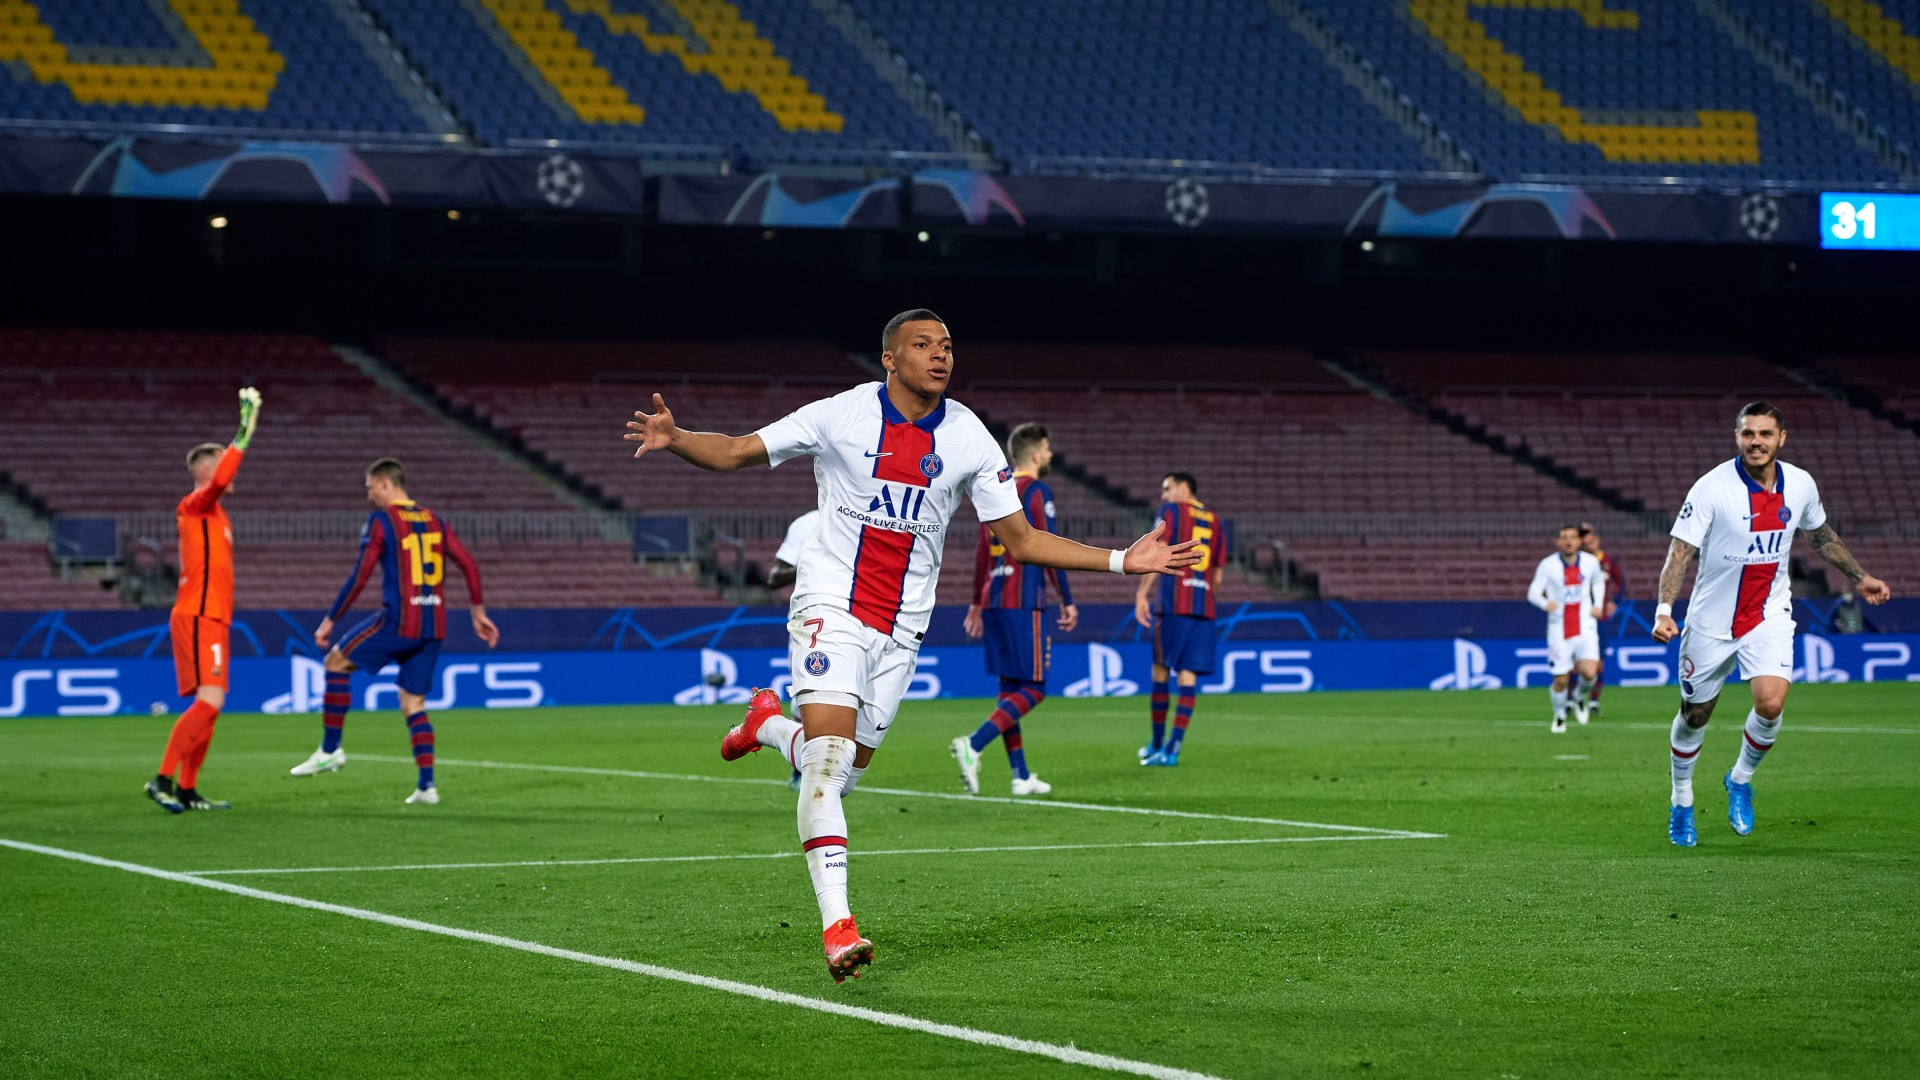 Koeman cuts short Mbappe and Haaland talk: We have to focus on our business